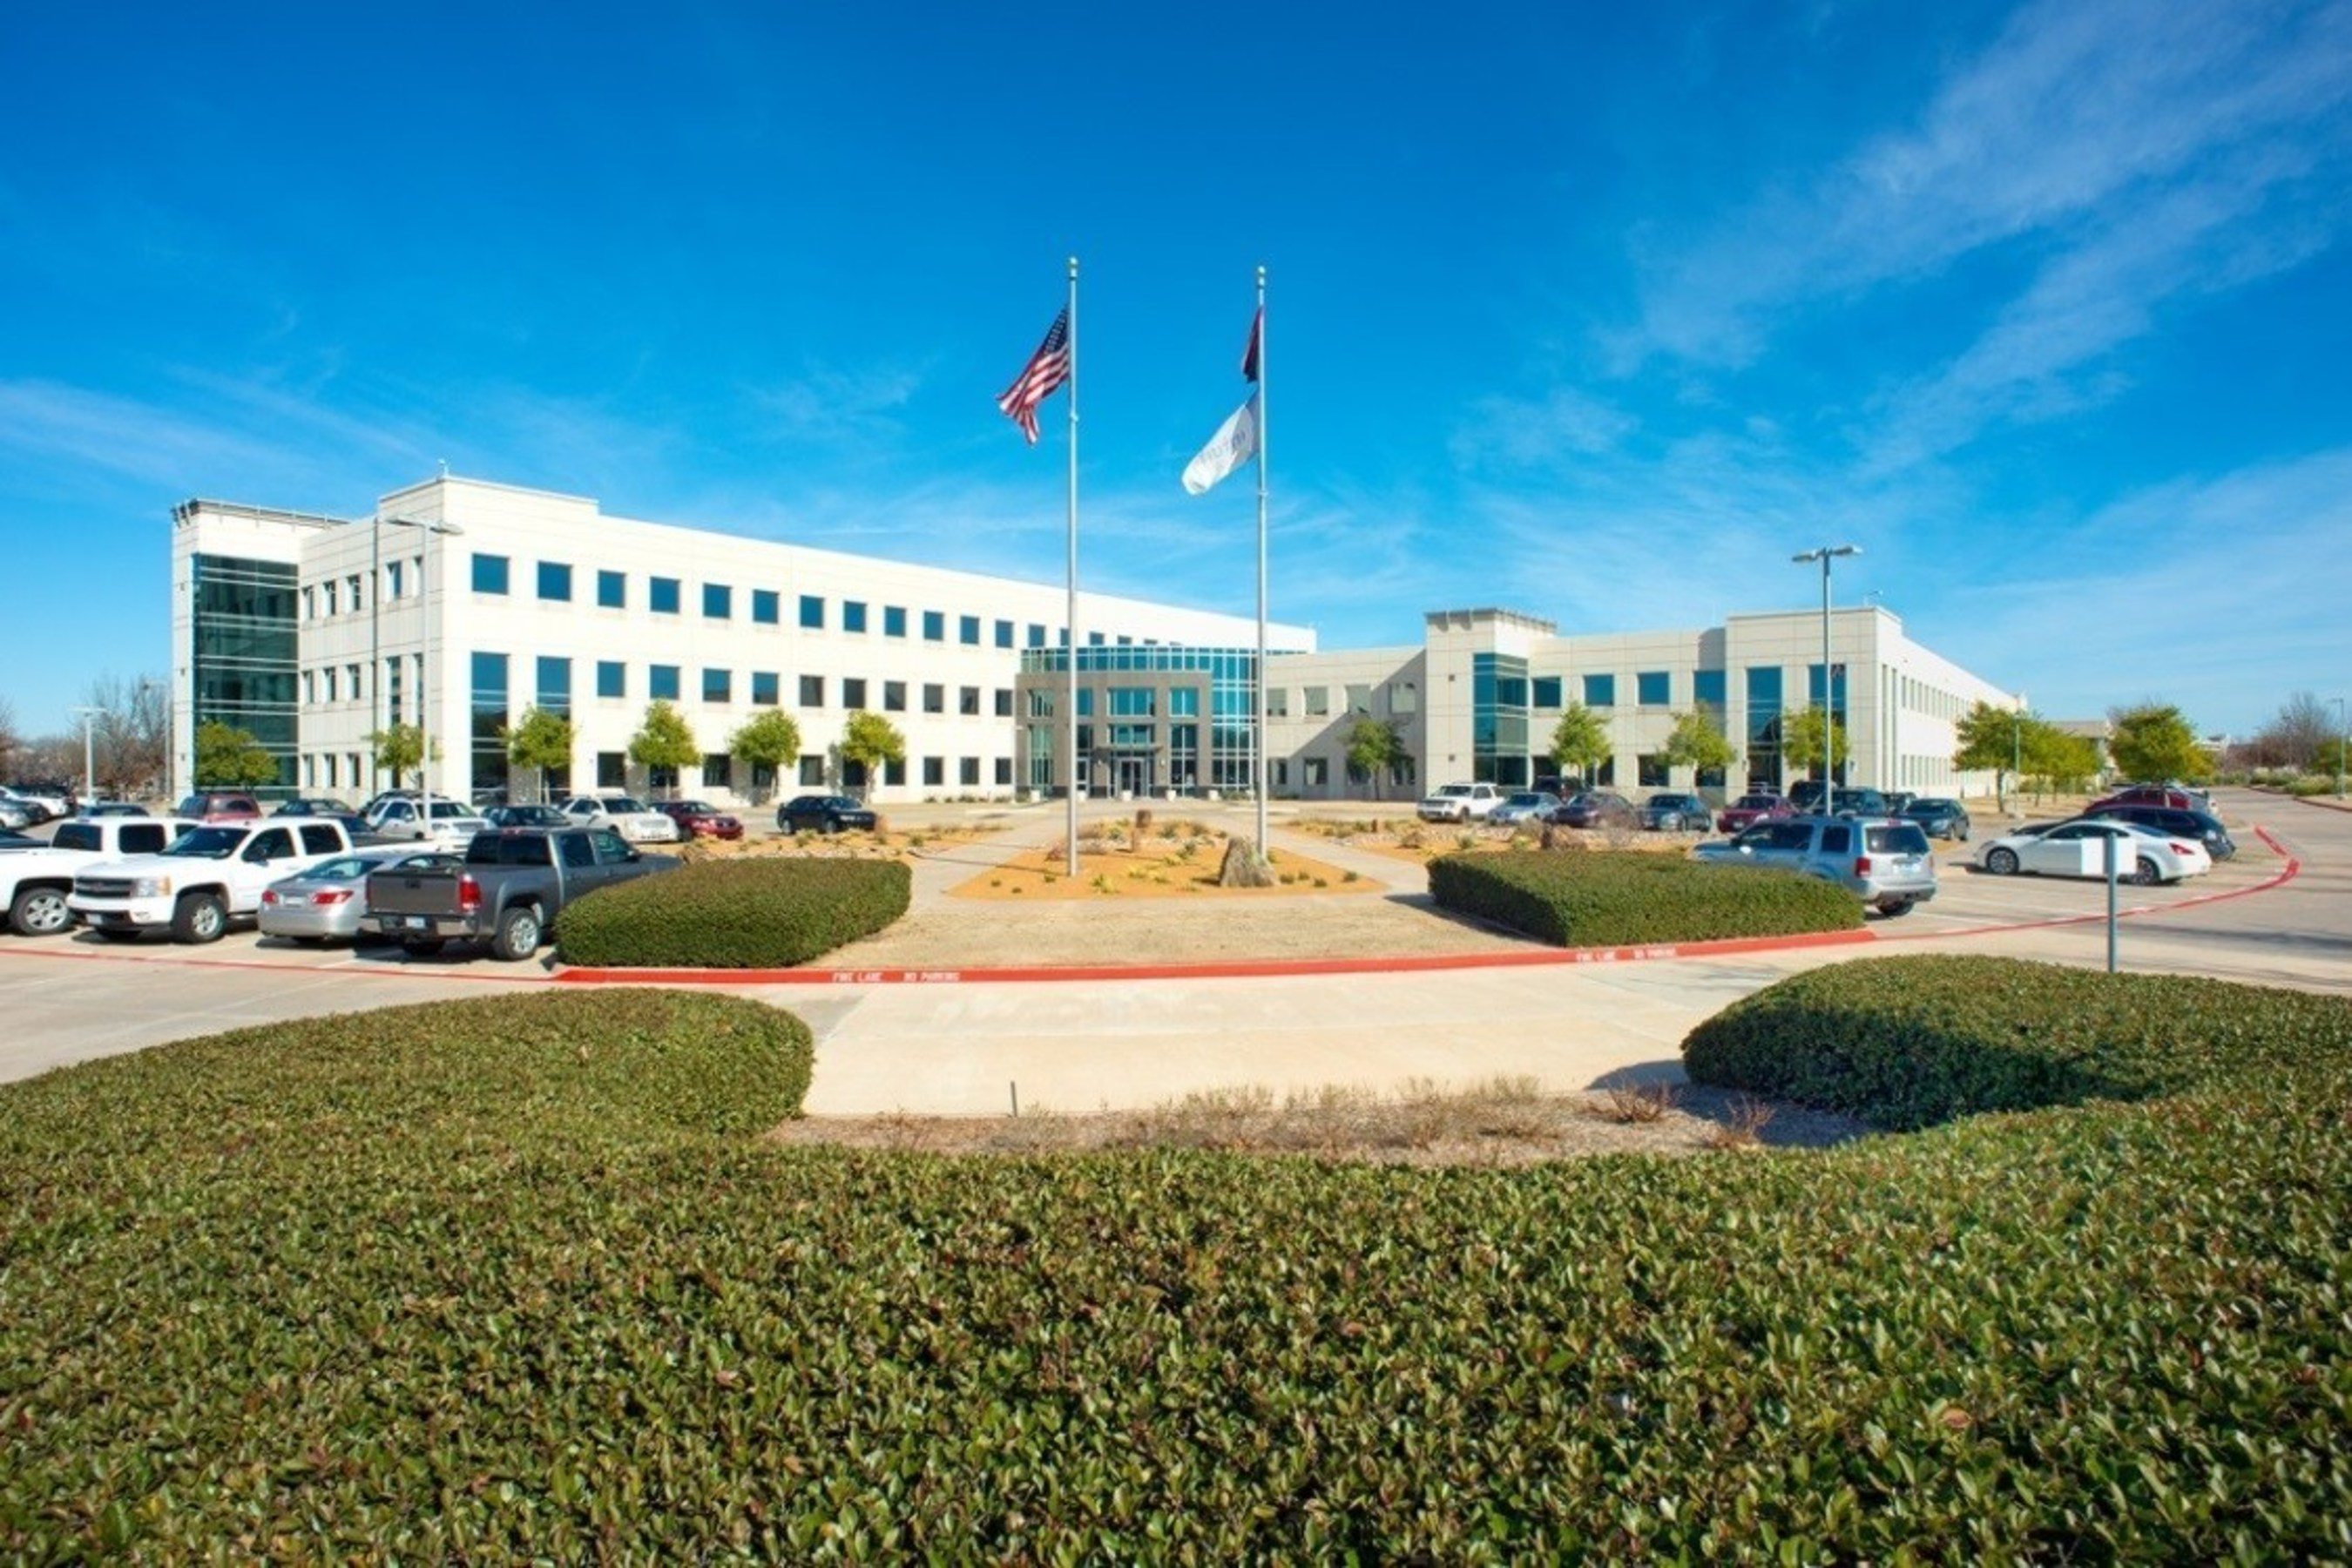 CPA:18 - Global acquires a Dallas office building leased to Intuit Inc. for a period of 11 years.  The 166,000 square-foot facility was constructed as a build-to-suit for Intuit in 2001 and is located in the Legacy Business Park-a 2,700 acre business park with a roster of Fortune 500 campuses several amenities and excellent access throughout the Dallas metropolitan area.